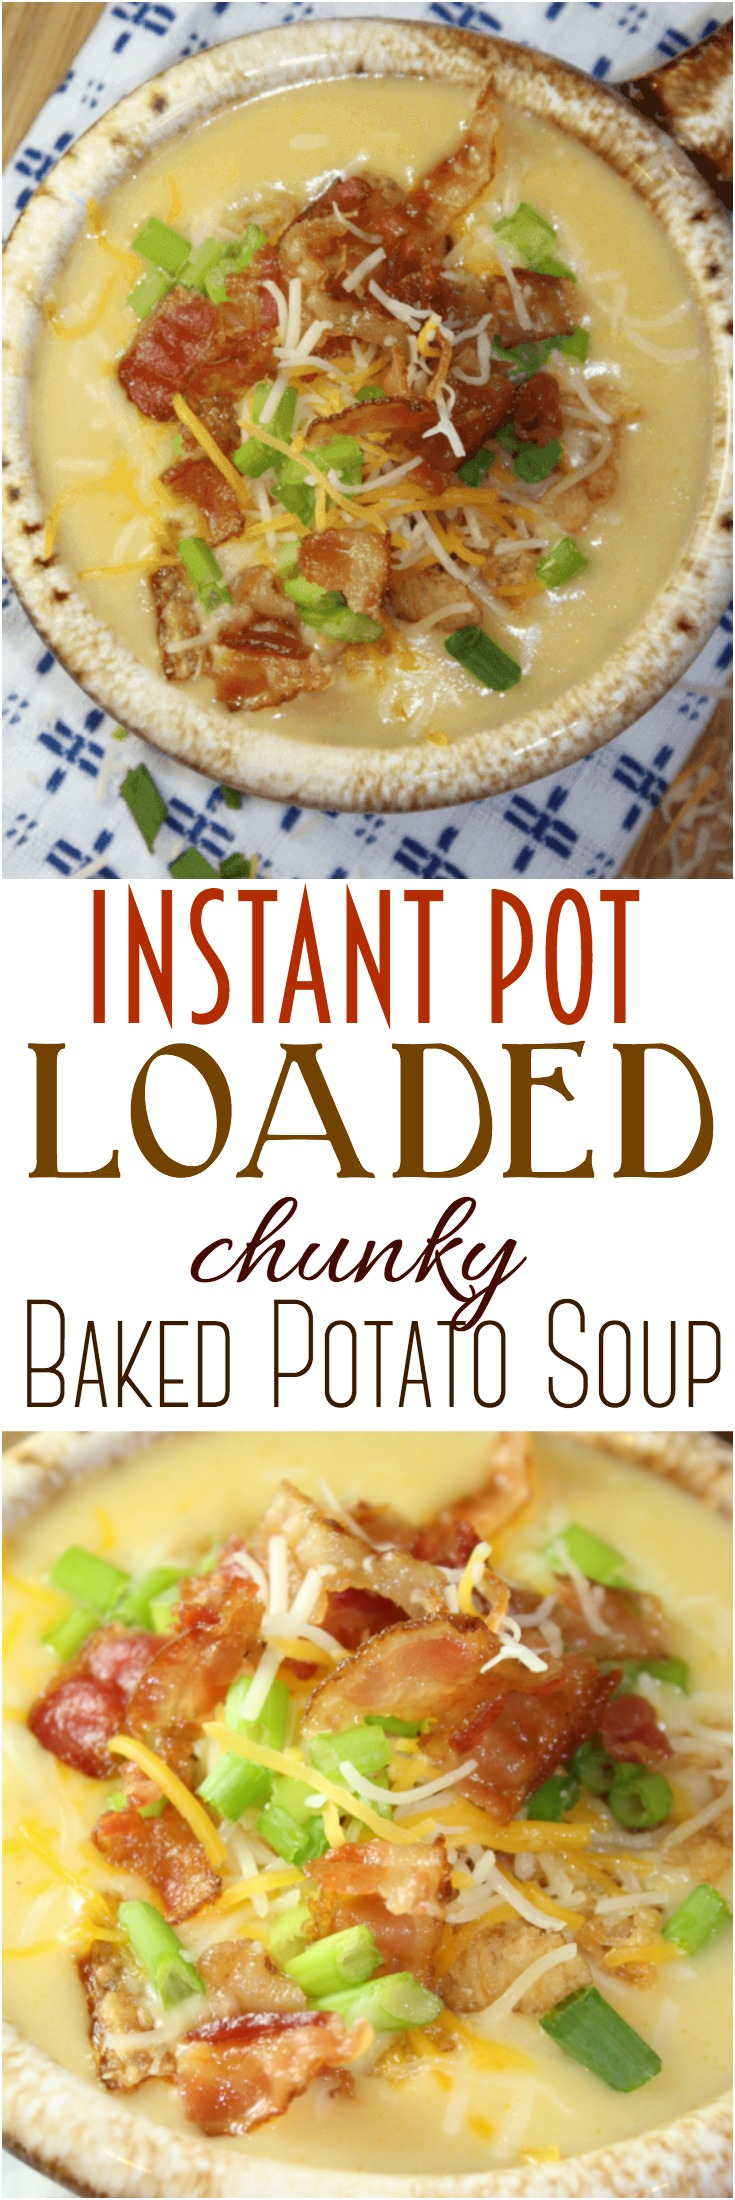 Loaded chunky potato soup - all the best flavors of a baked potato come together in this deliciously comforting soup, made easily in the Instant Pot!